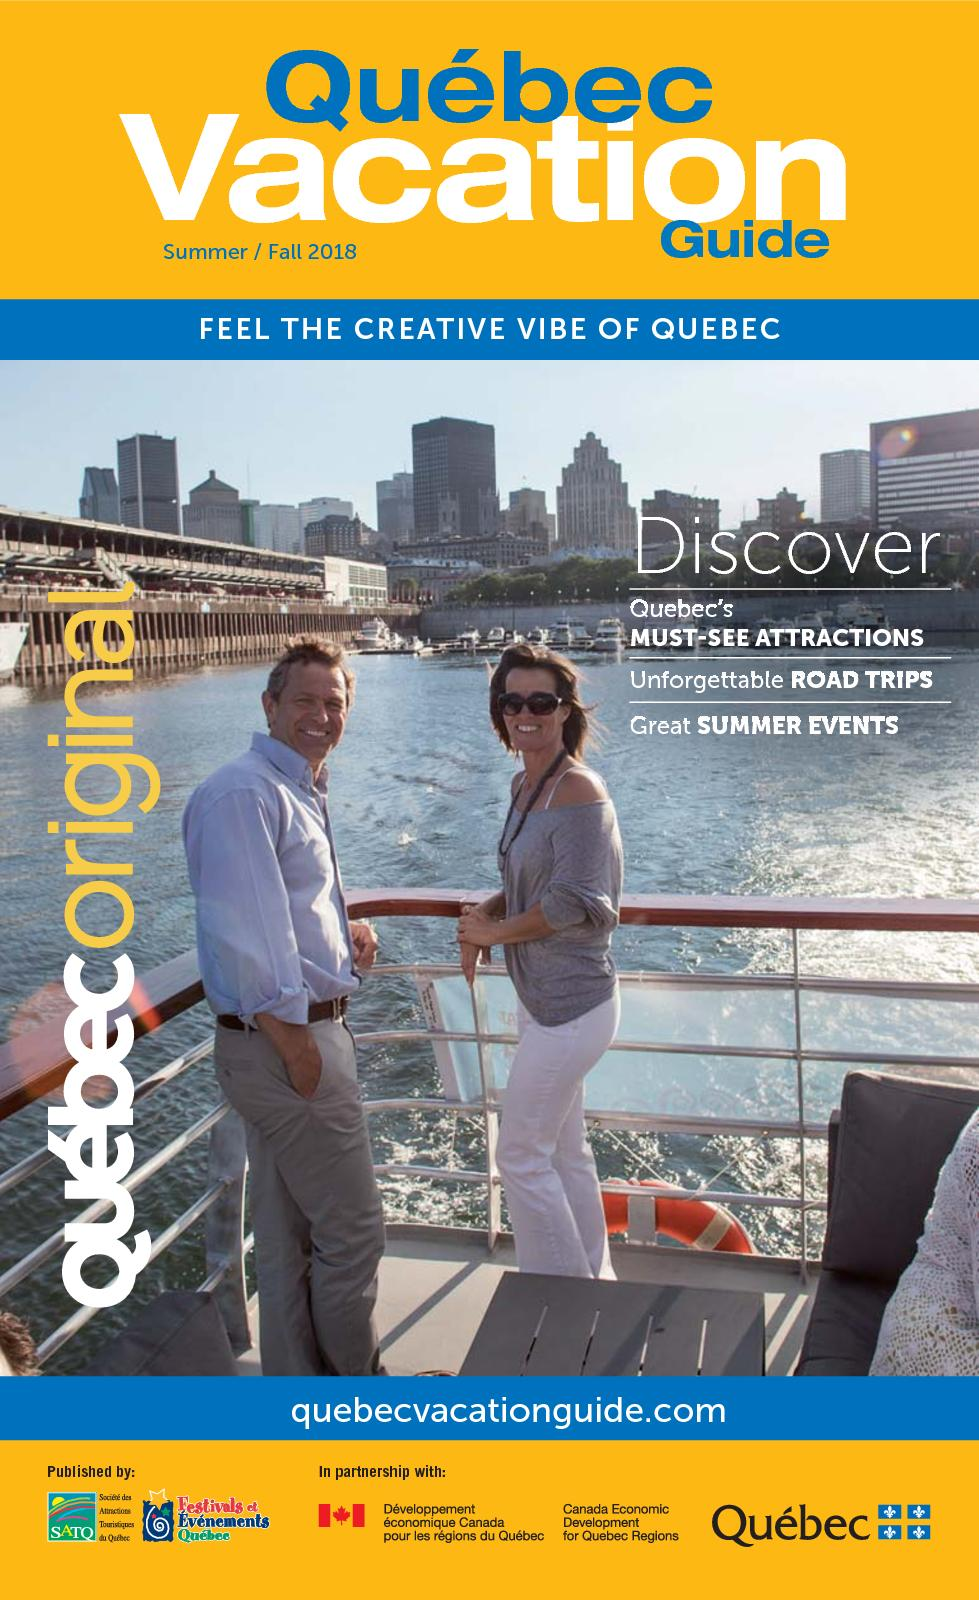 Calaméo - FEEL THE CREATIVE VIBE OF QUEBEC - Quebec Vacation Guide Summer /  Fall 2018